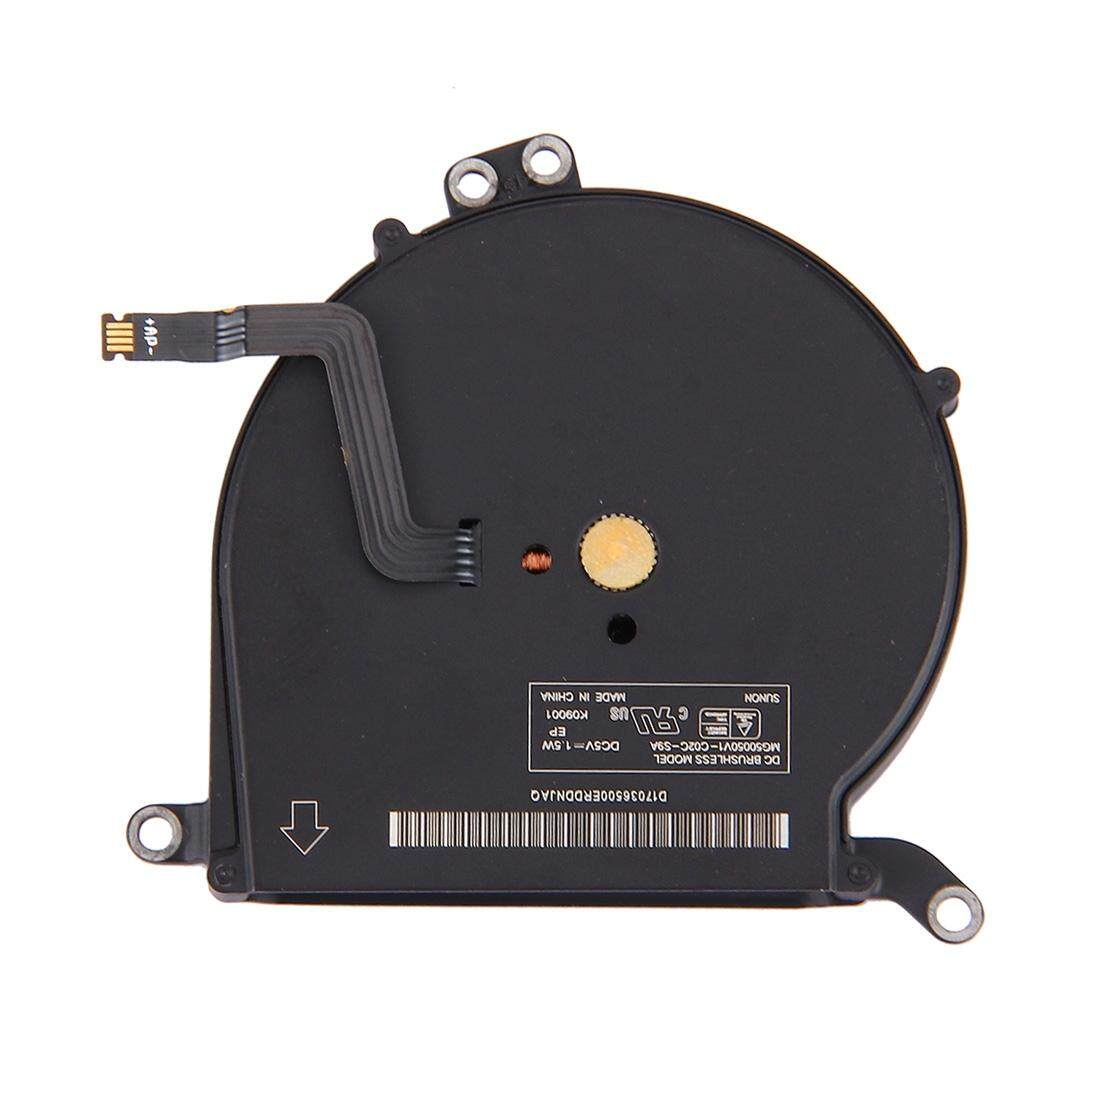 Original Cooling Fan for Macbook Air 13.3 inch (2011 - 2014) A1369 and A1466 - intl